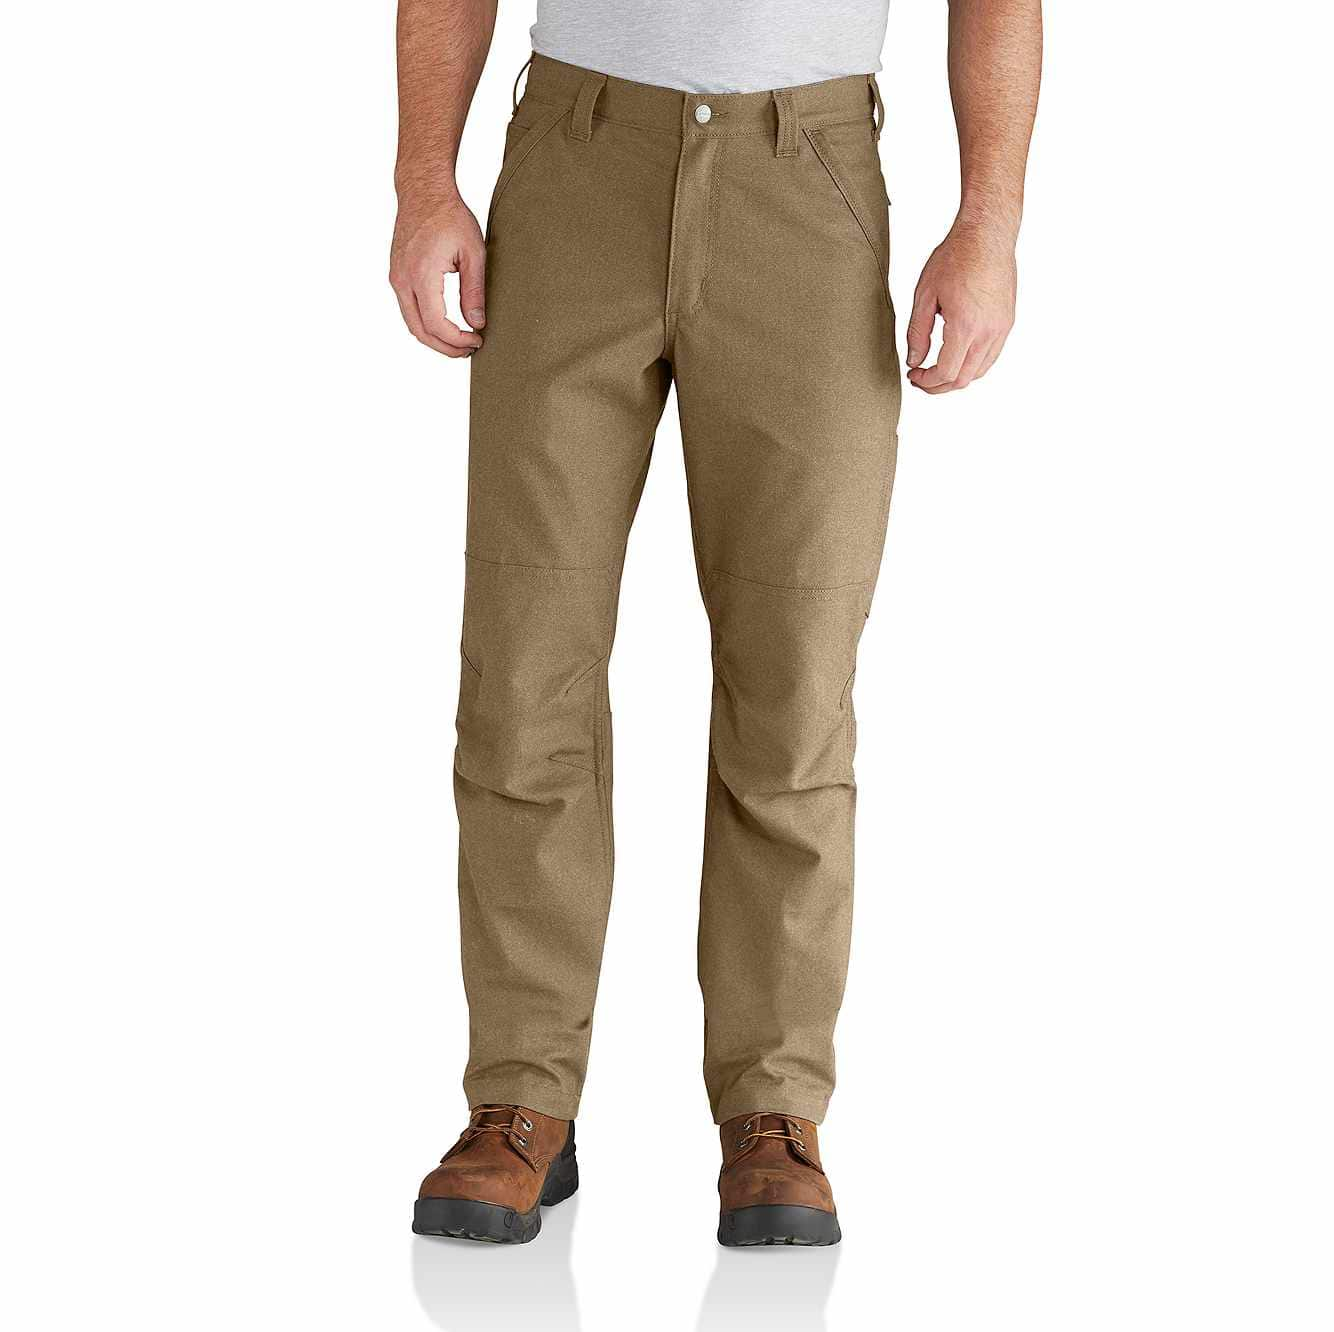 Picture of Full Swing® Water-Repellent Cryder Work Pant 2.0 in Yukon